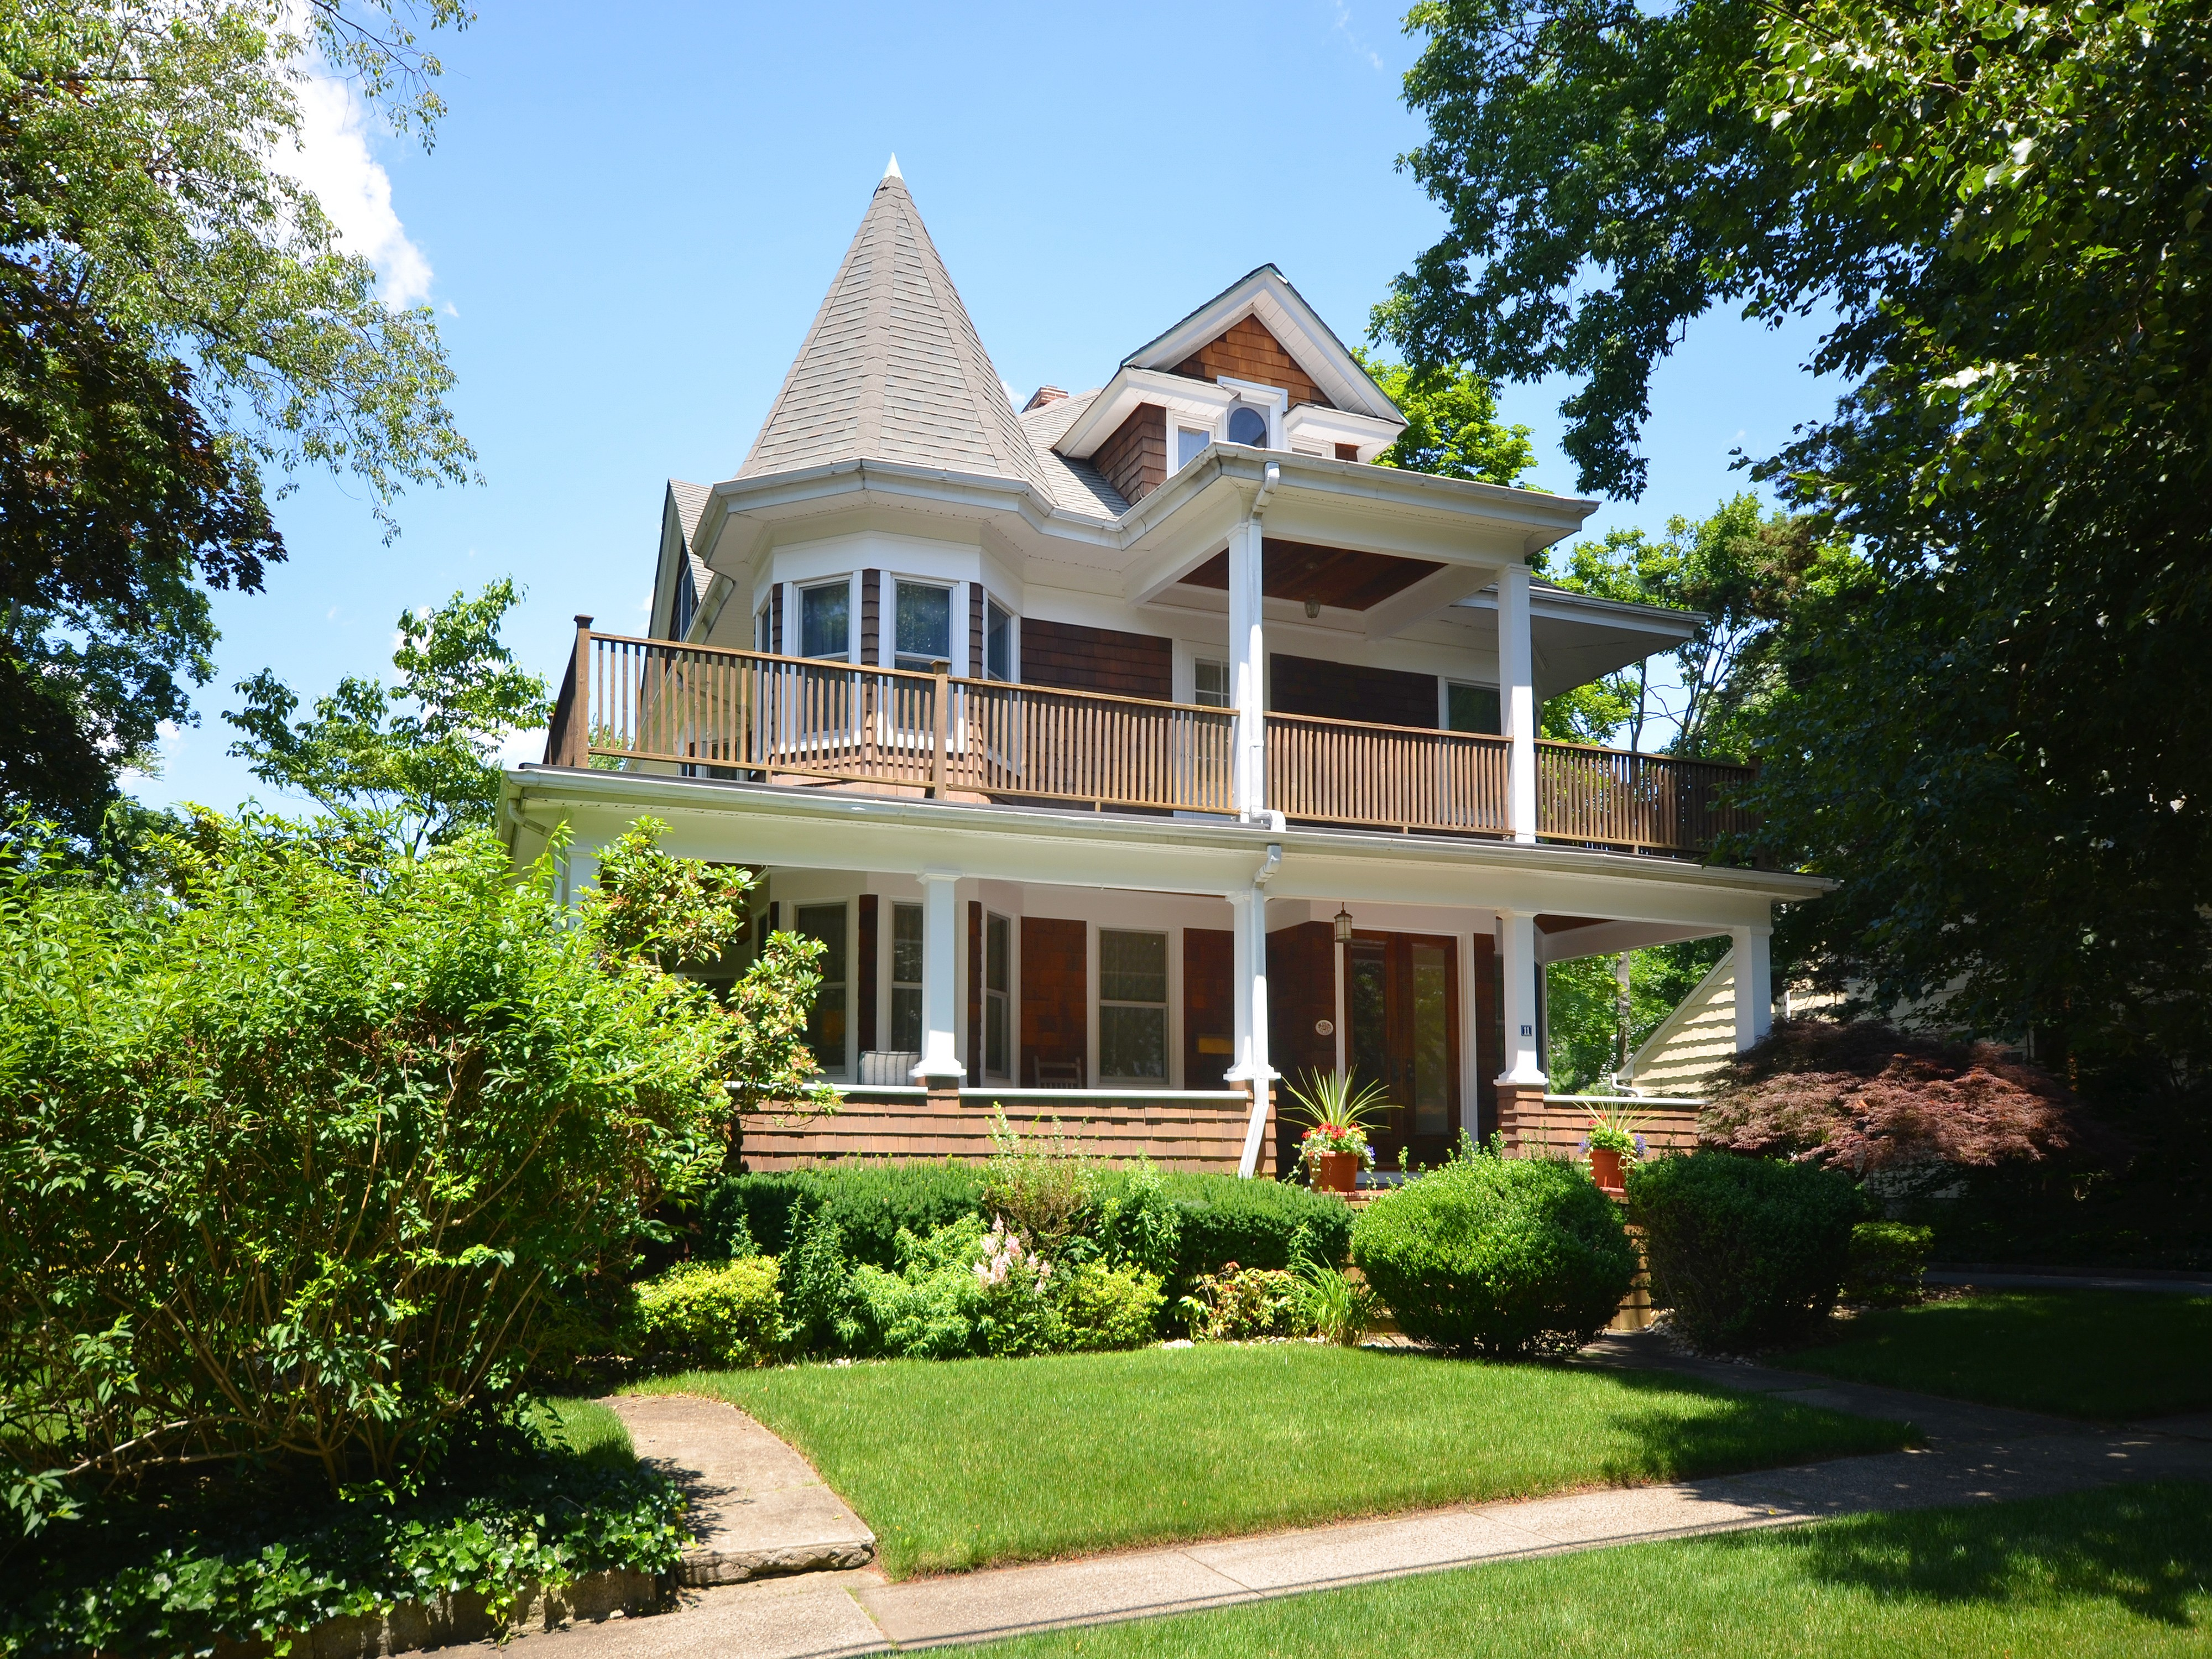 Single Family Home for Sale at Victorian 11 Reid Ave Port Washington, New York, 11050 United States